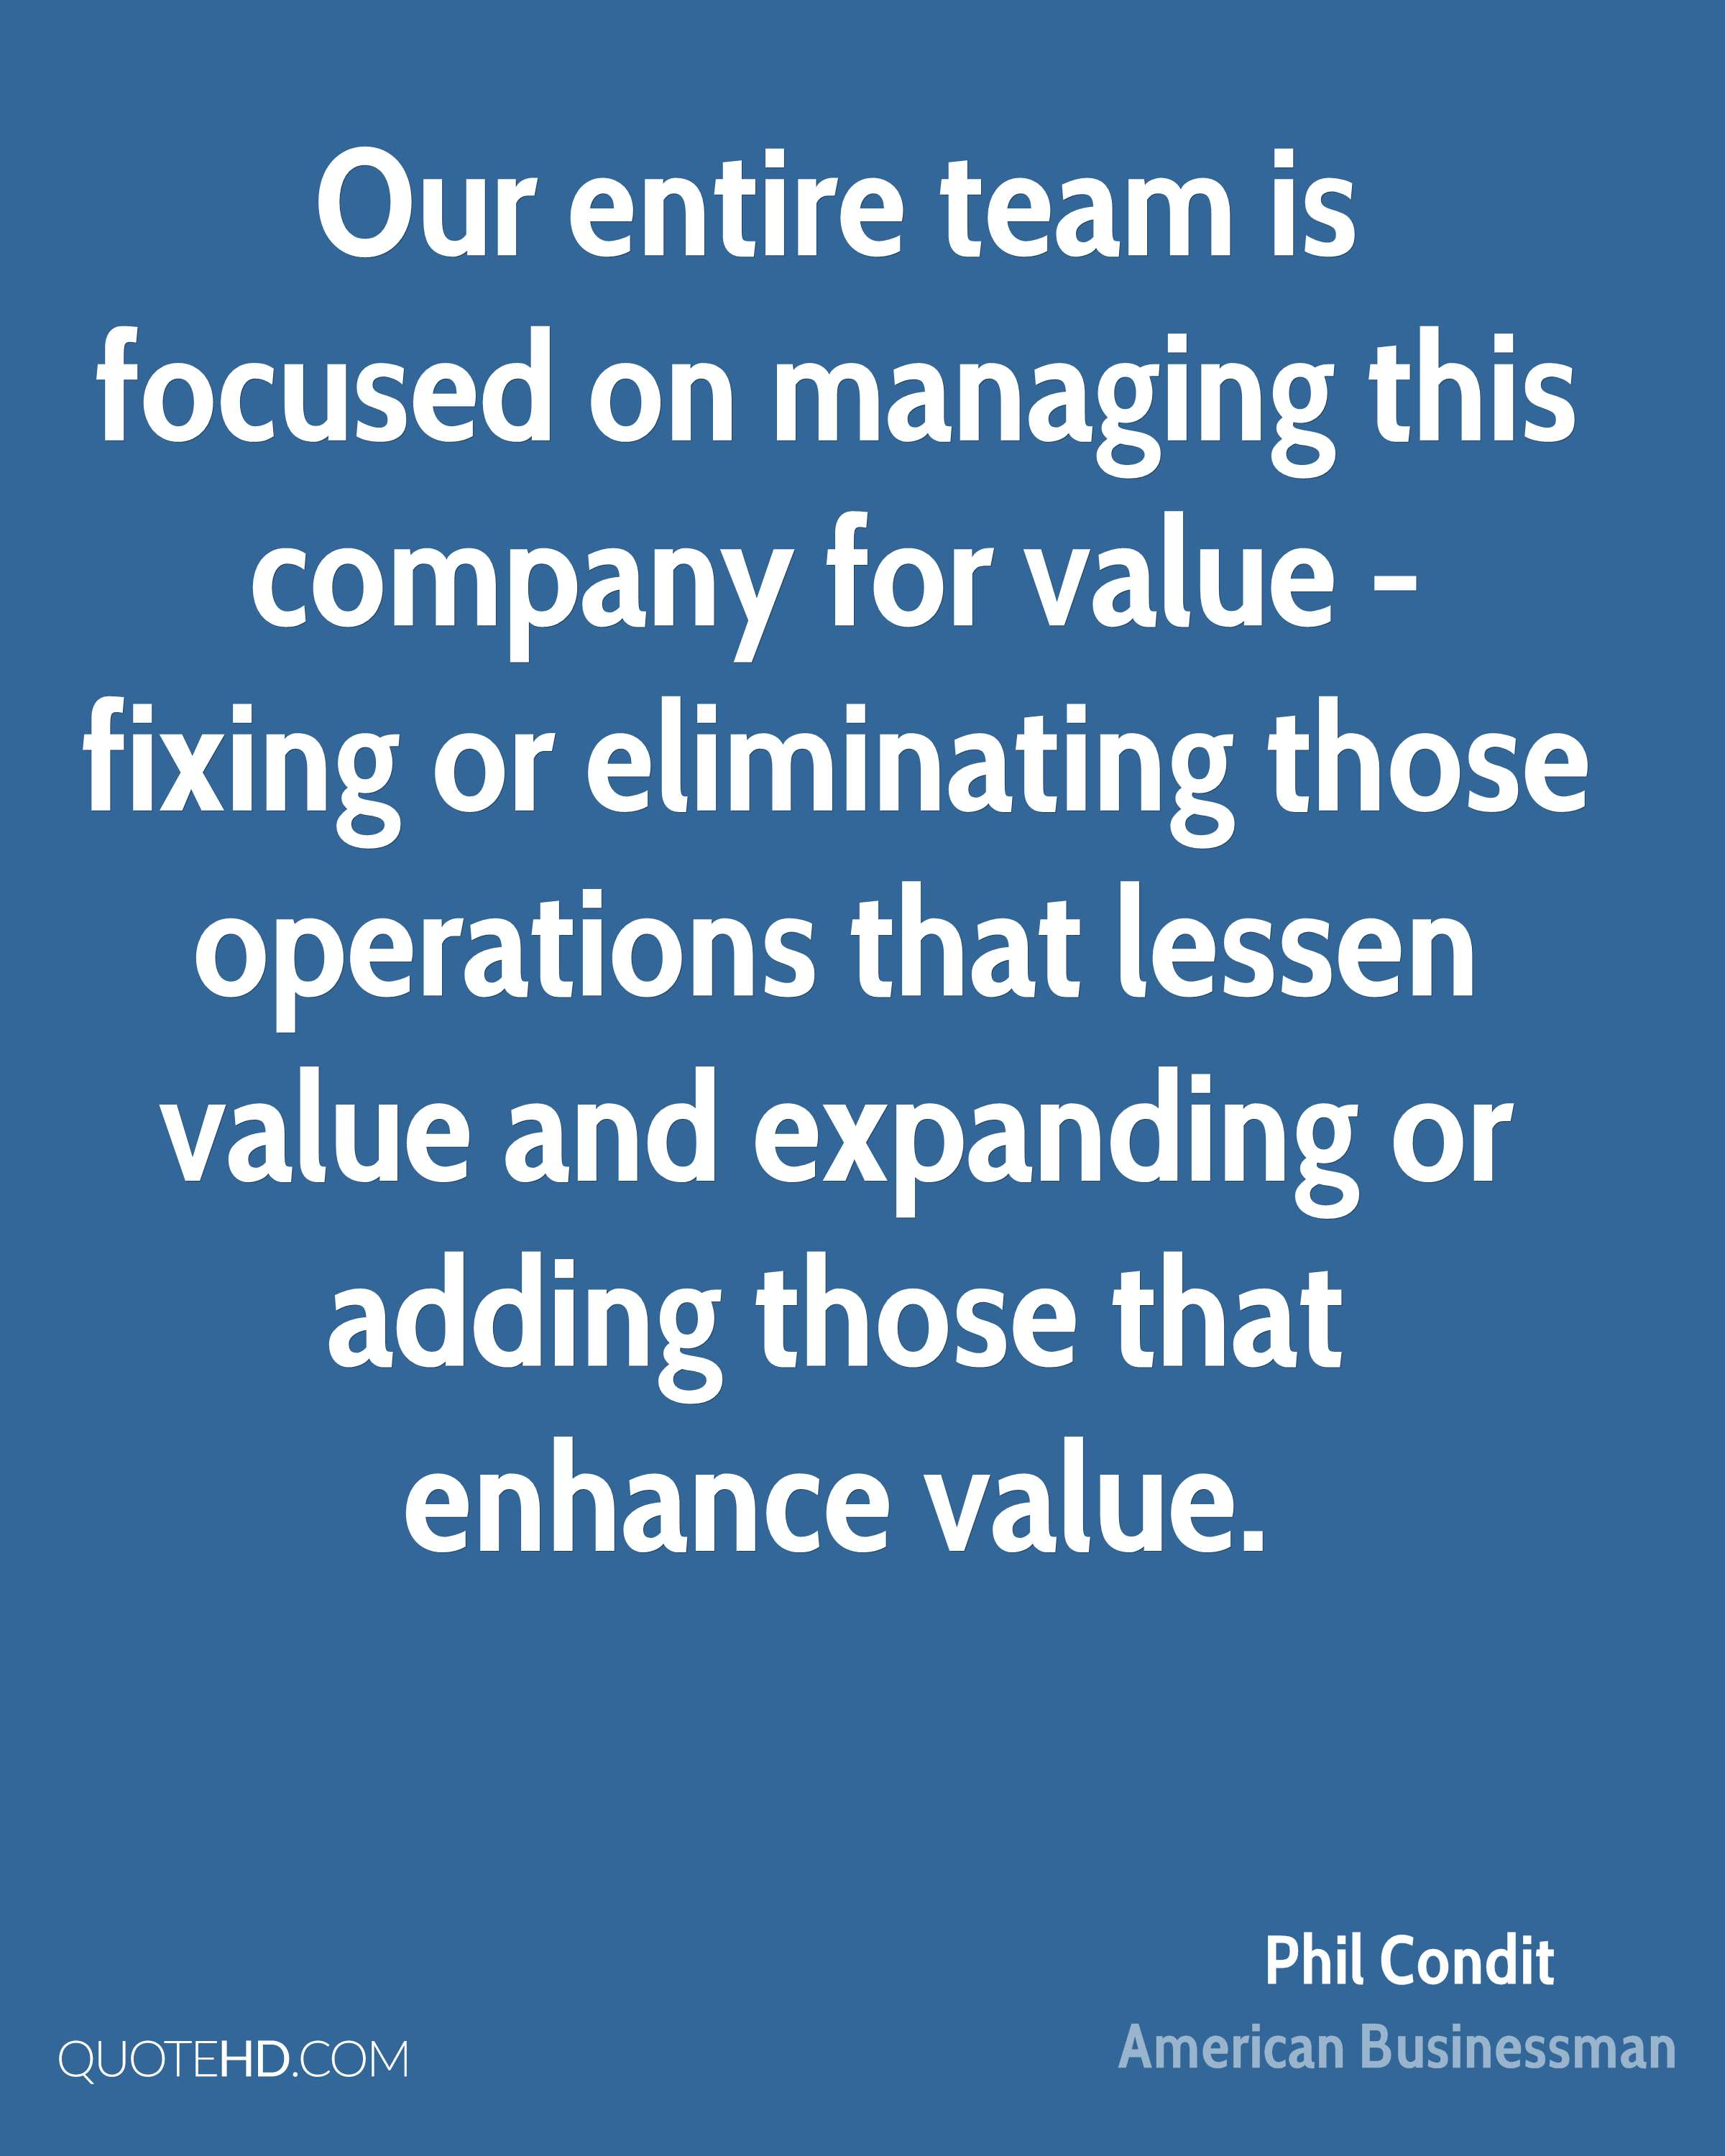 Our entire team is focused on managing this company for value - fixing or eliminating those operations that lessen value and expanding or adding those that enhance value.